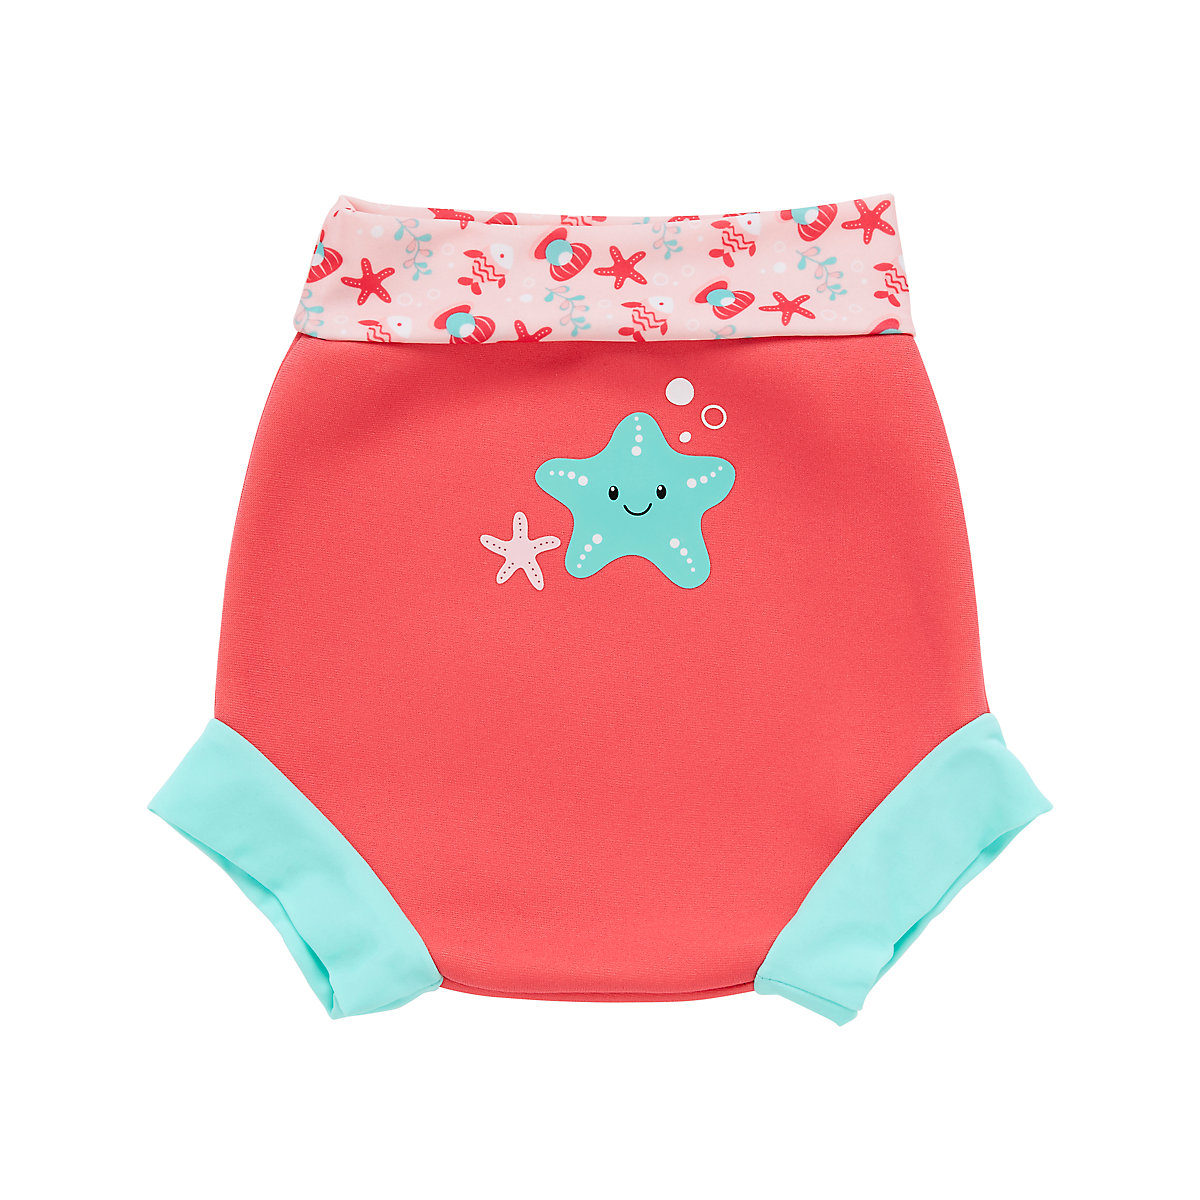 Mothercare Baby Nappy Cover Girls 6 9 Months